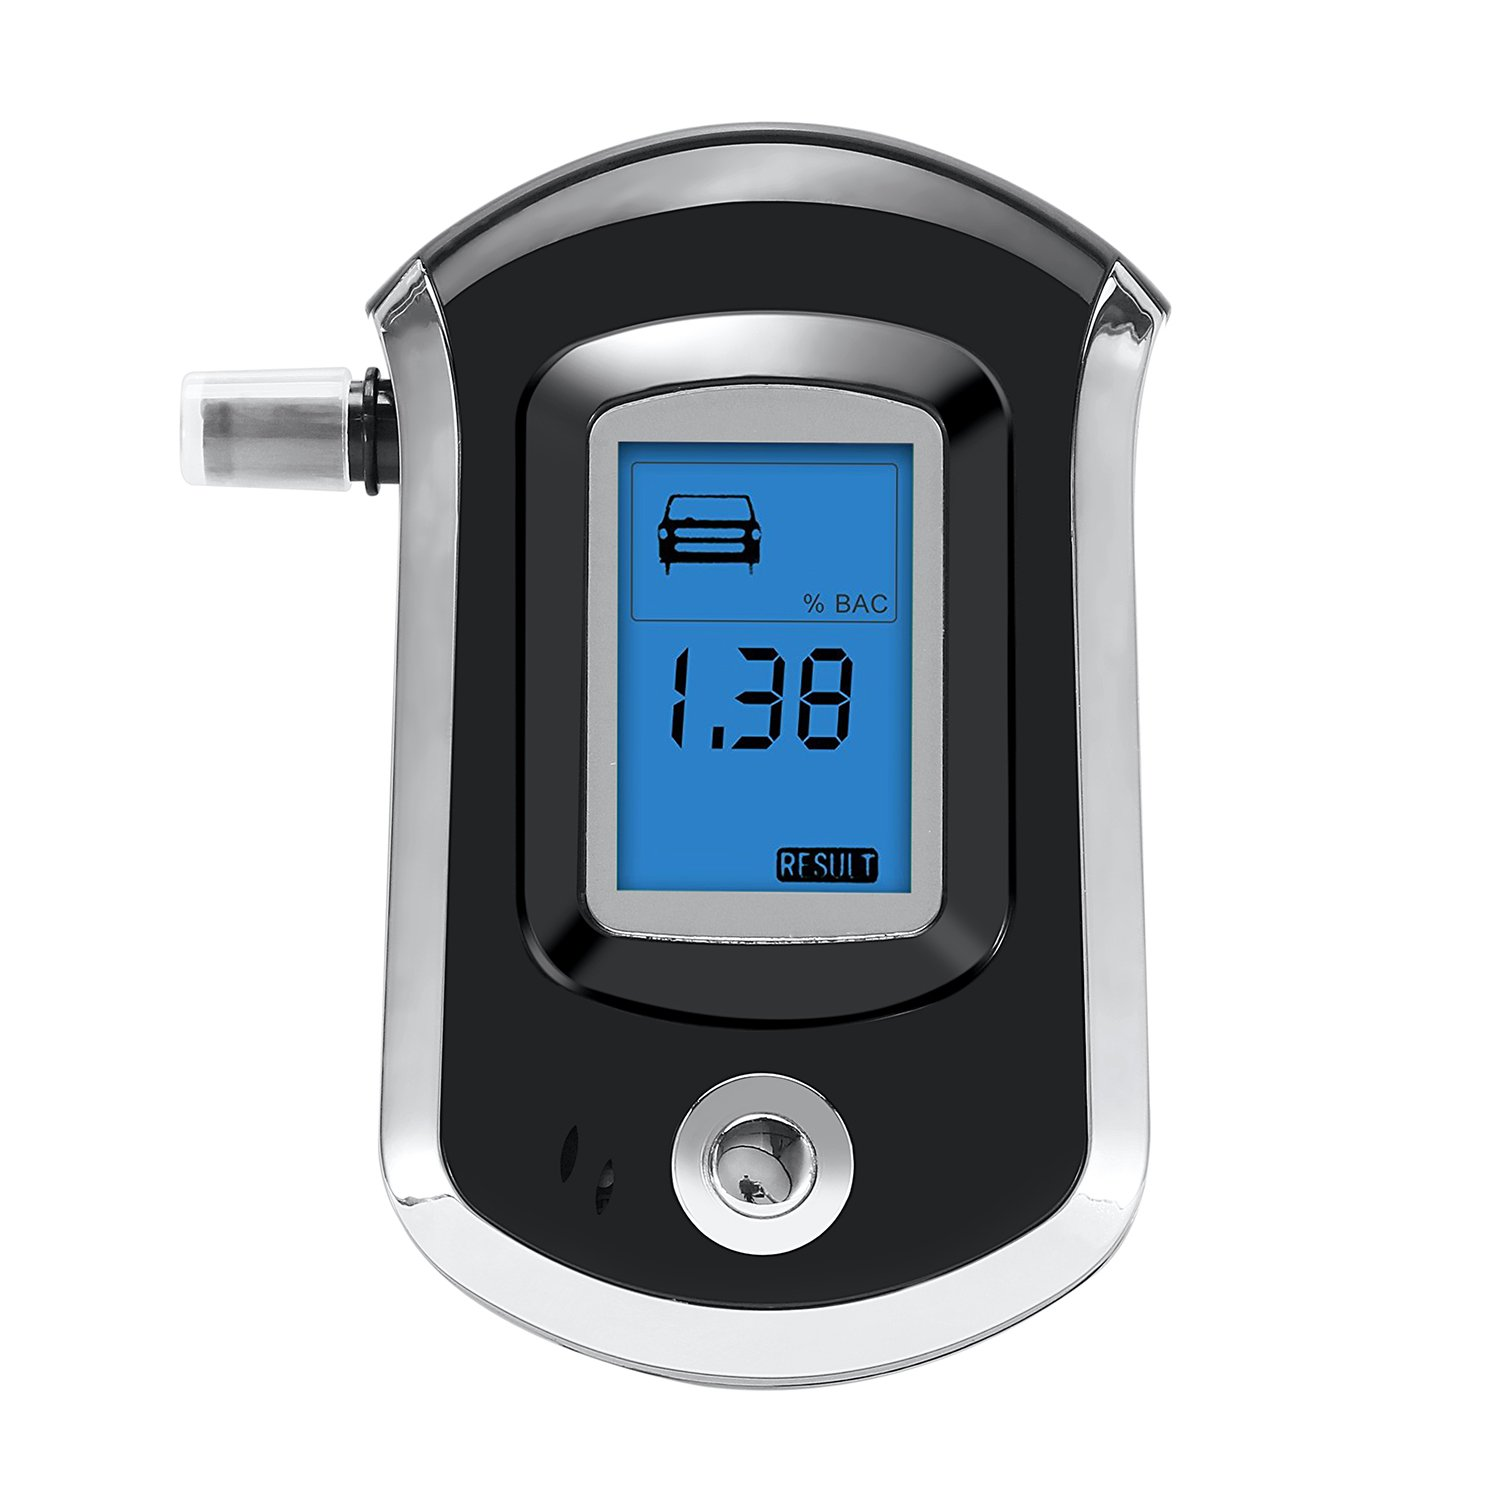 Professional Breathalyzer GDbow Portable Breath Alcohol Tester with LCD Display Digital Breath Alcohol Tester for Drivers